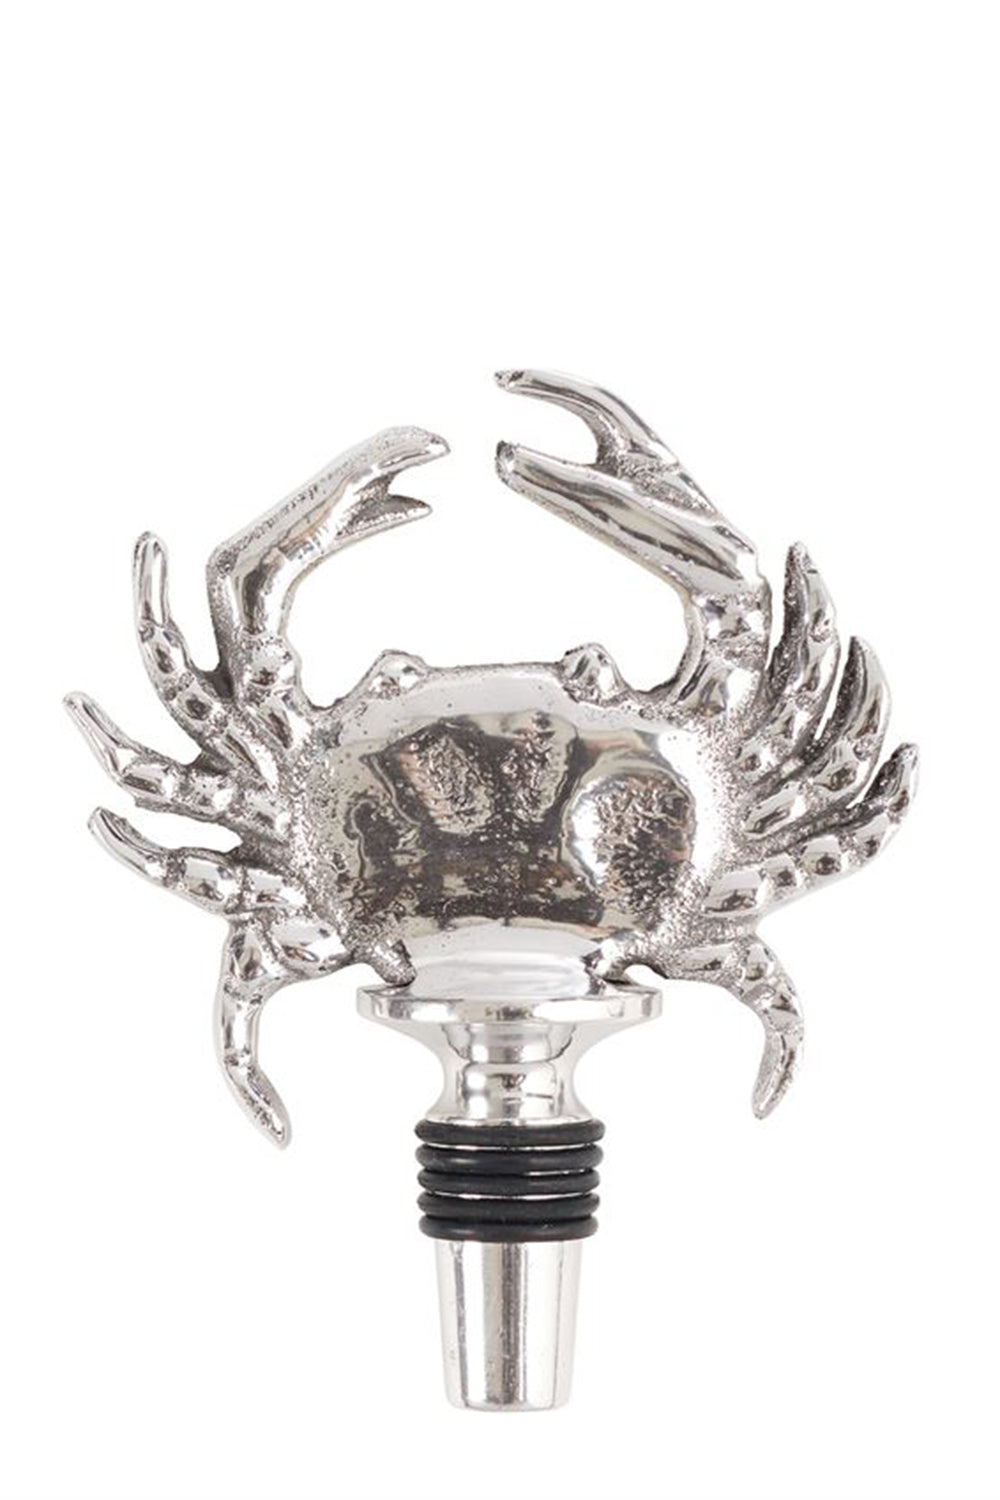 Silver Crab Bottle Topper